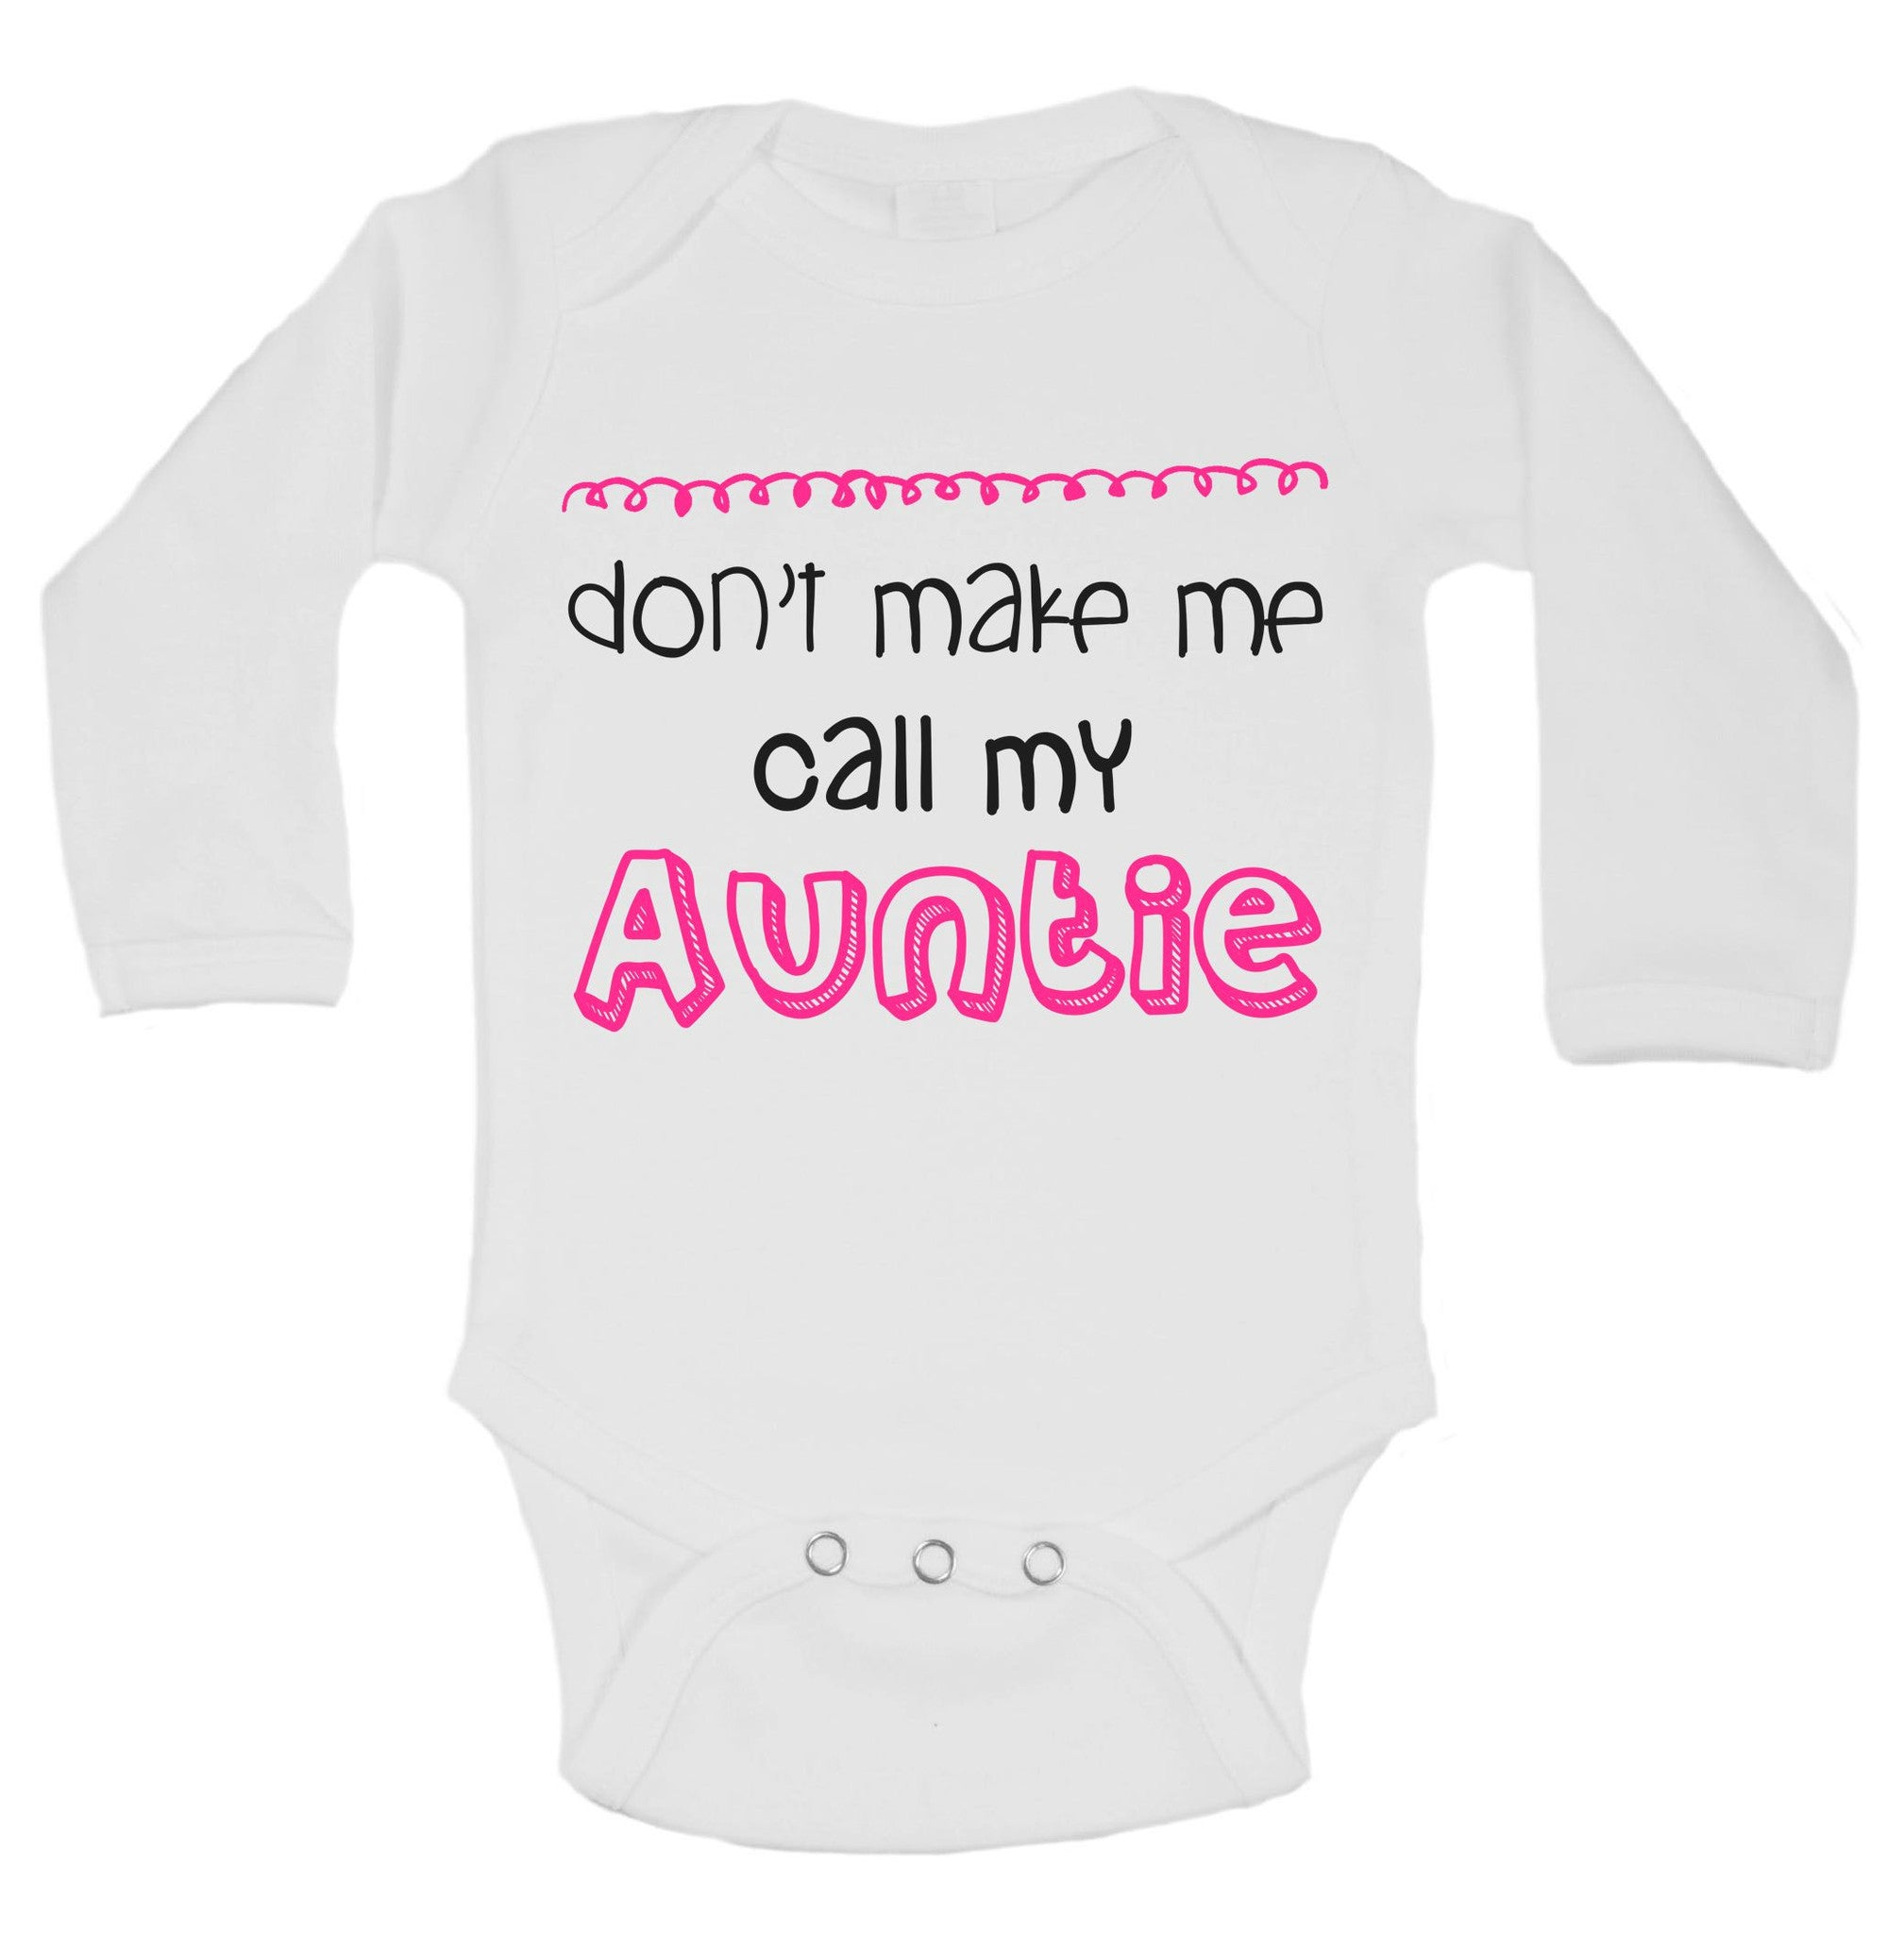 Don't Make Me Call My Auntie Funny Kids Onesie - B141 - Funny Shirts Tank Tops Burnouts and Triblends  - 1